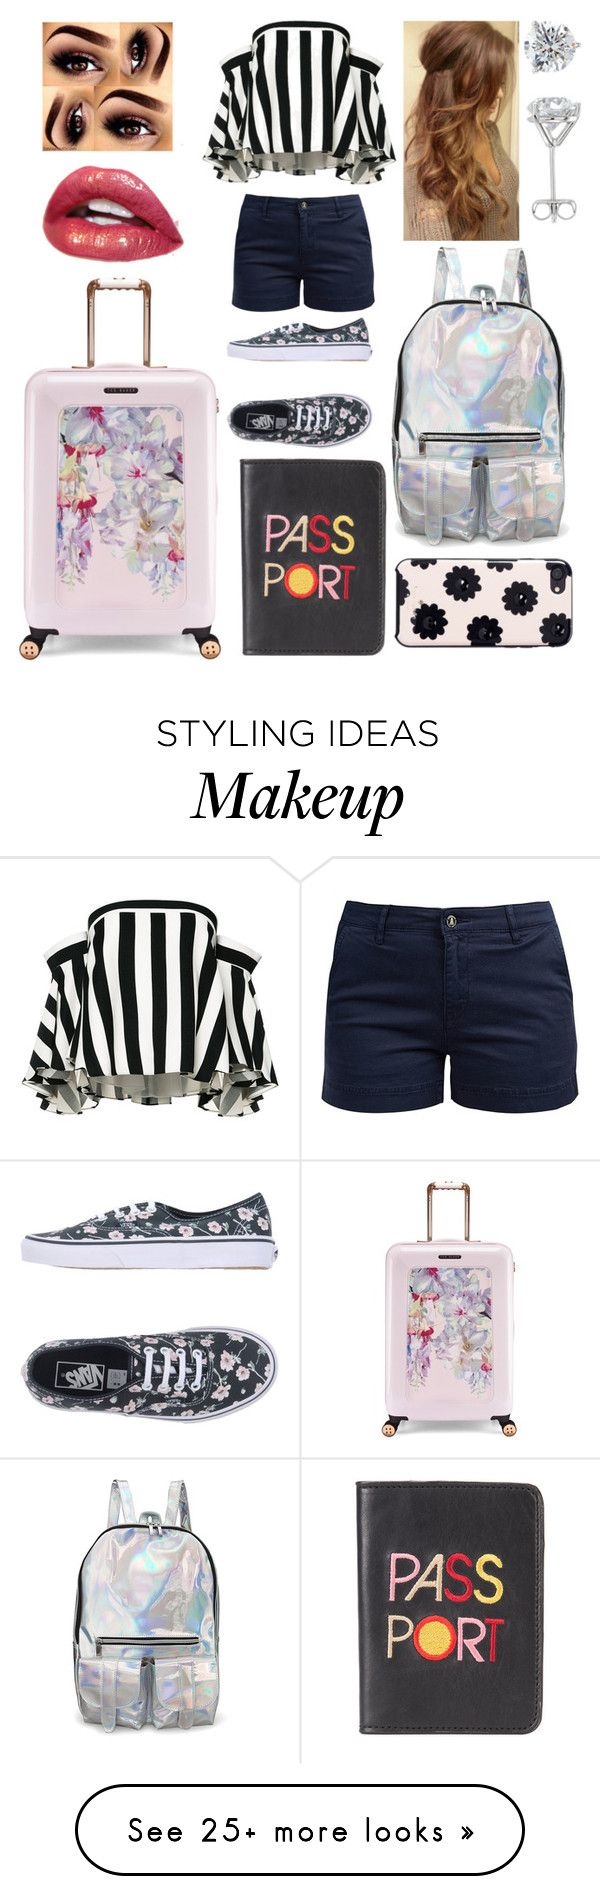 """""""Untitled #724"""" by ladytaurus-queengrizzly on Polyvore featuring Milly, Barbour, Vans, Kate Spade, Lizzie Fortunato and Ted Baker"""